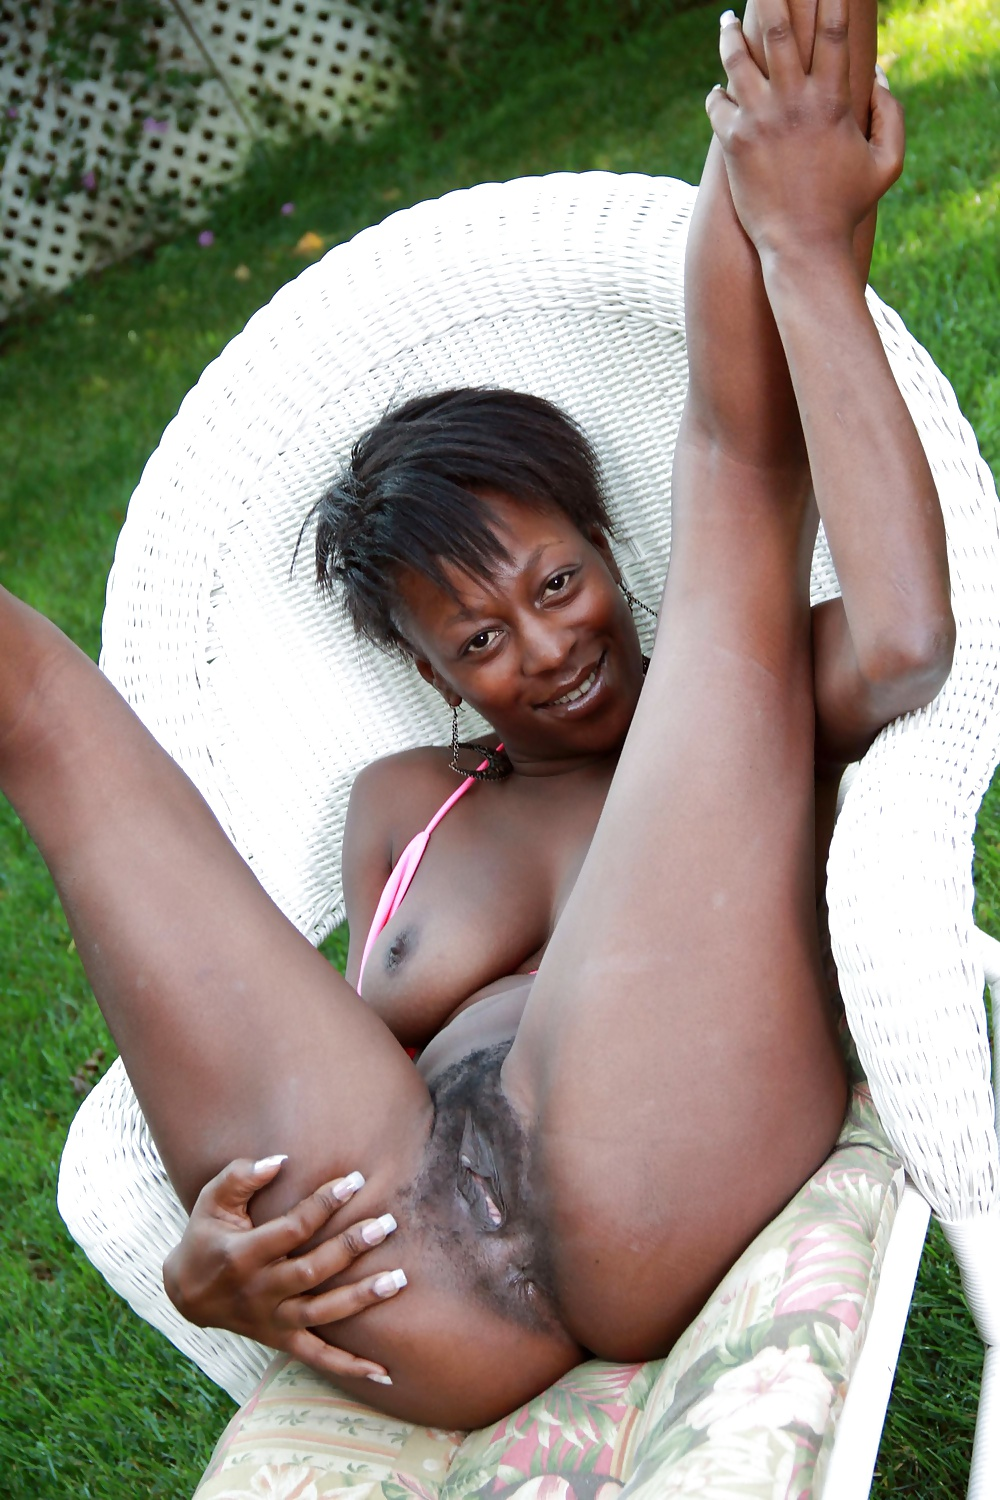 Sweetie black ebony voyeur panties hairy pussies streaming pics hq